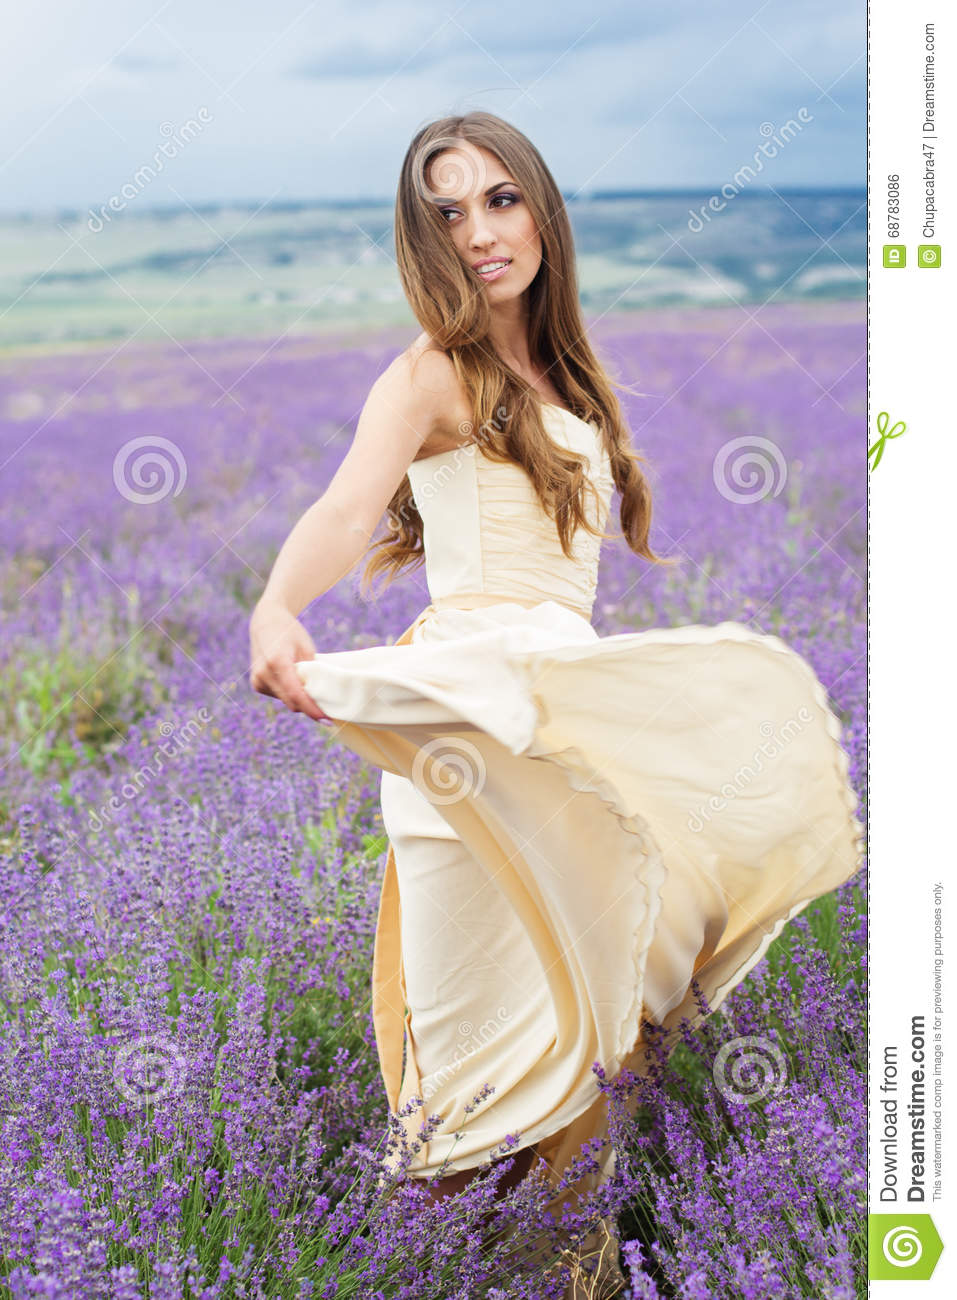 Beautiful Girl In White Dress At Lavender Field Stock Photo Image